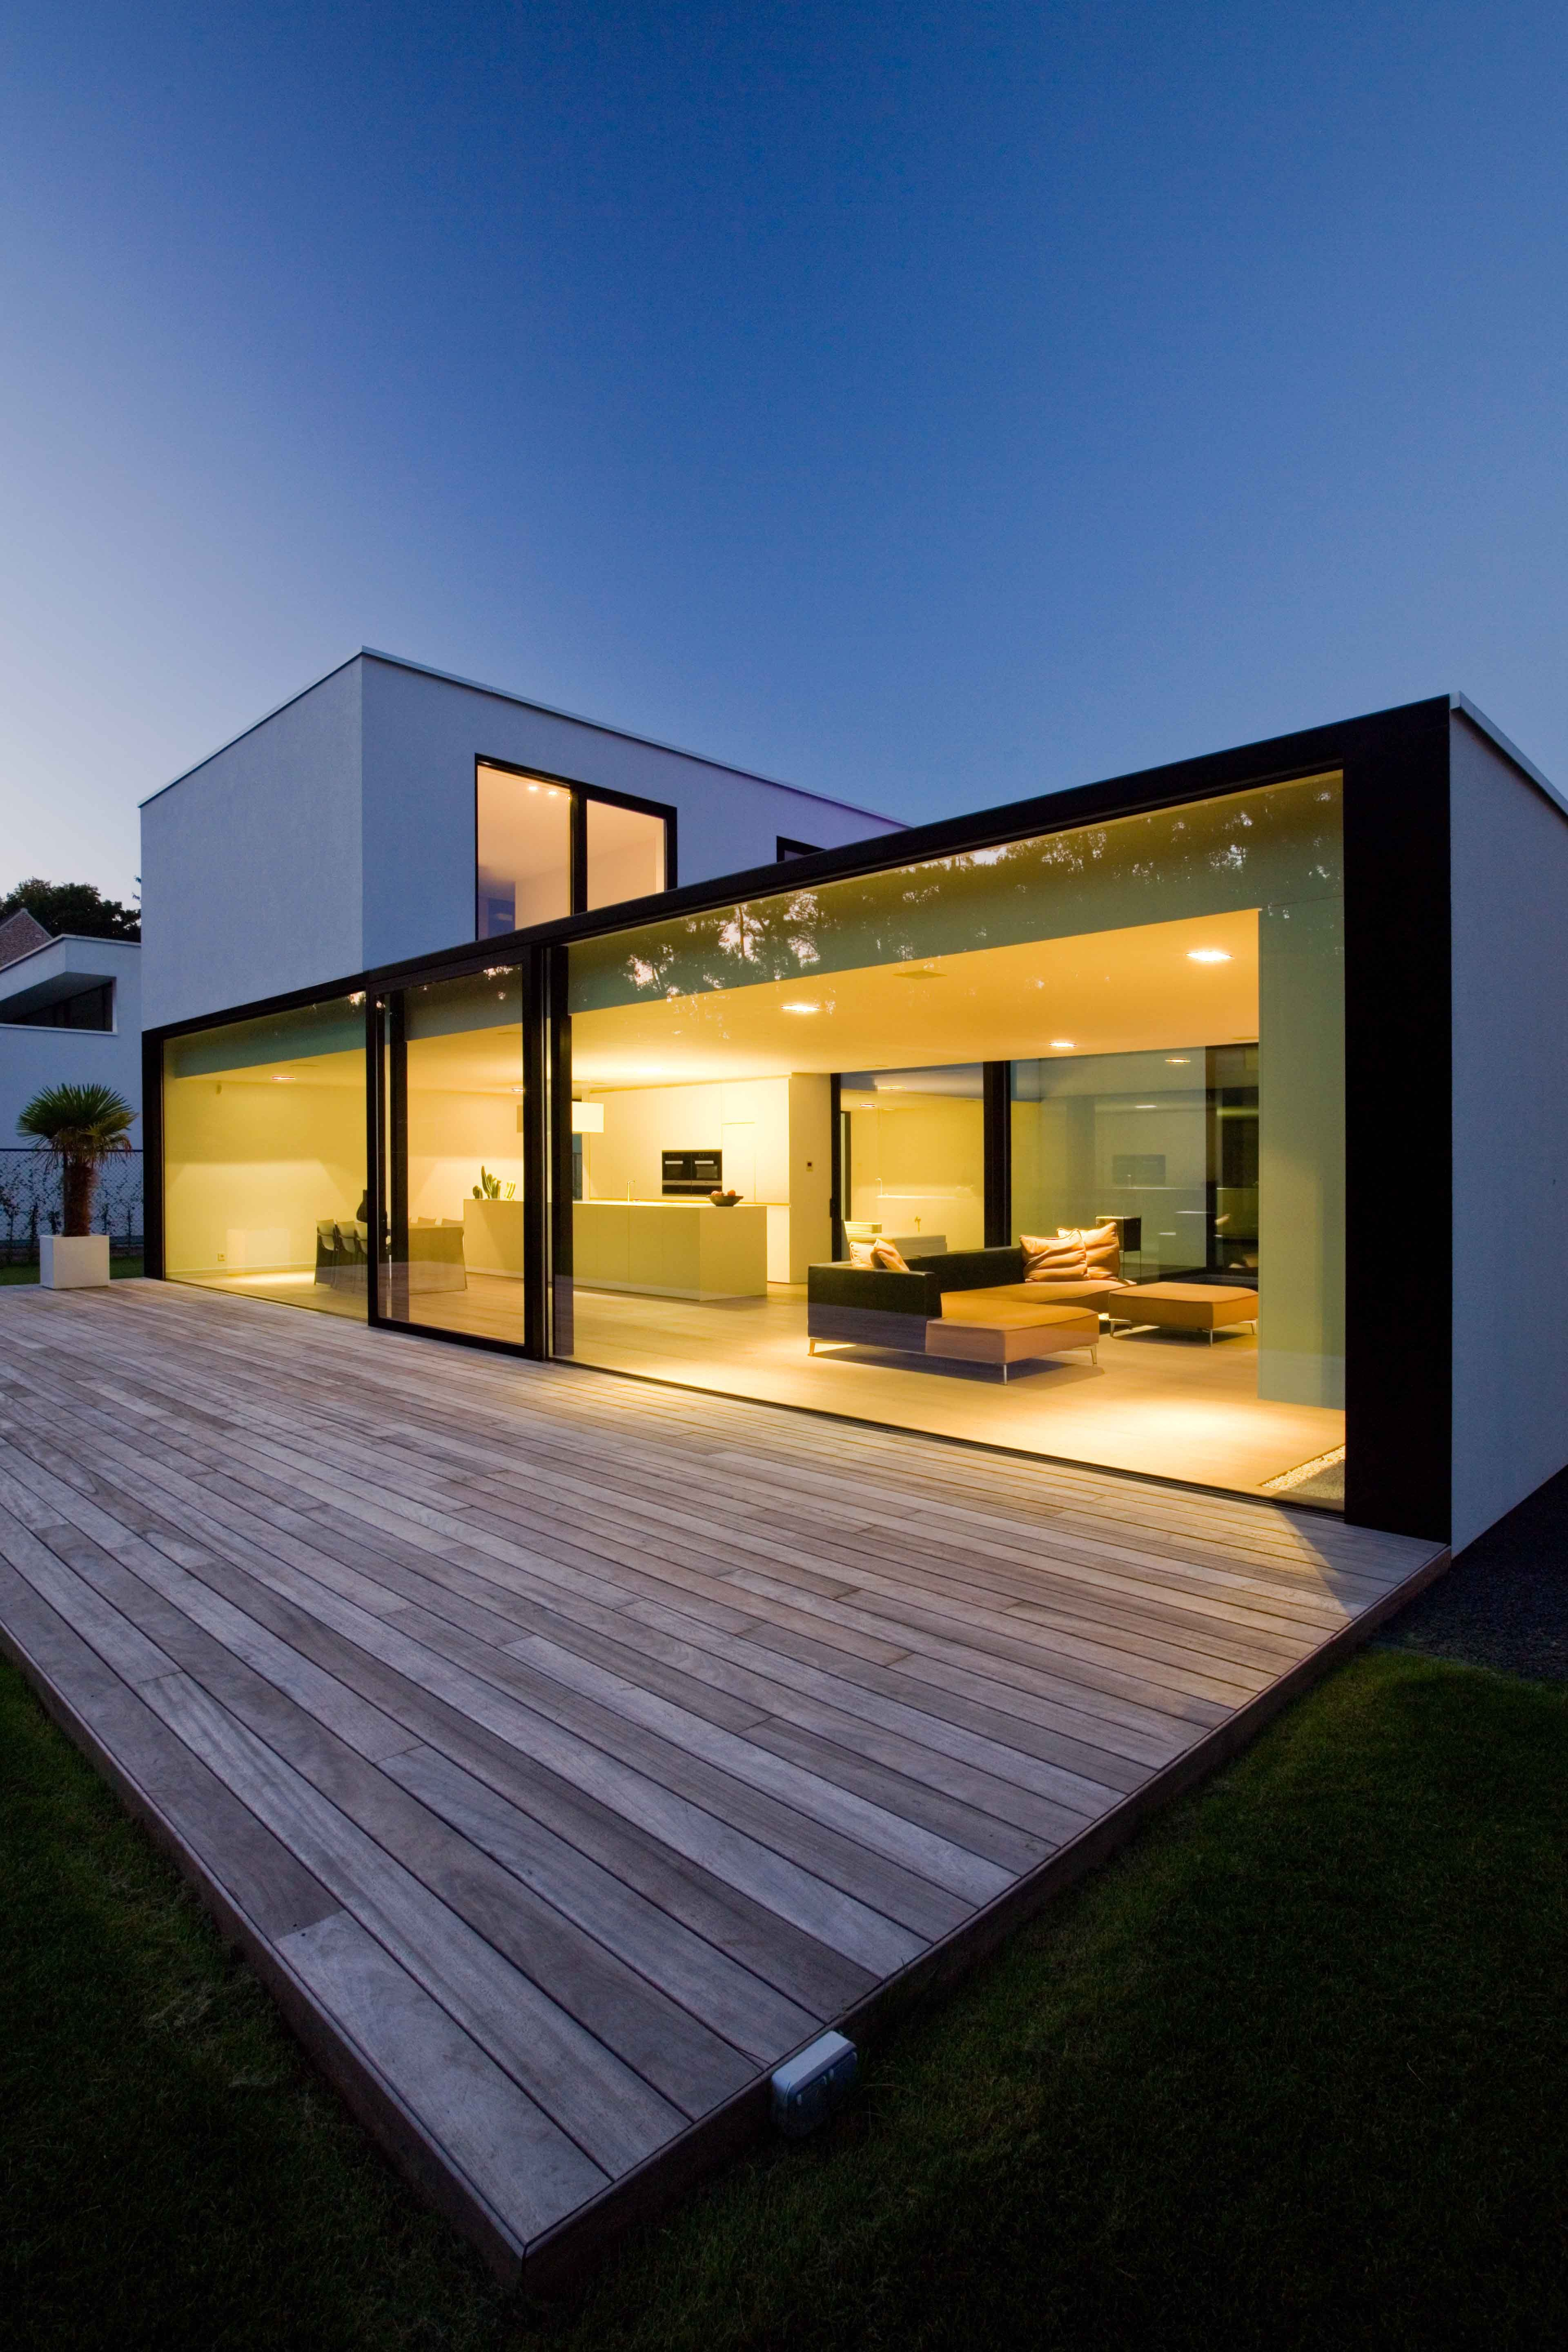 icoon.be architecten minimalist houde | Architecture | Pinterest ...